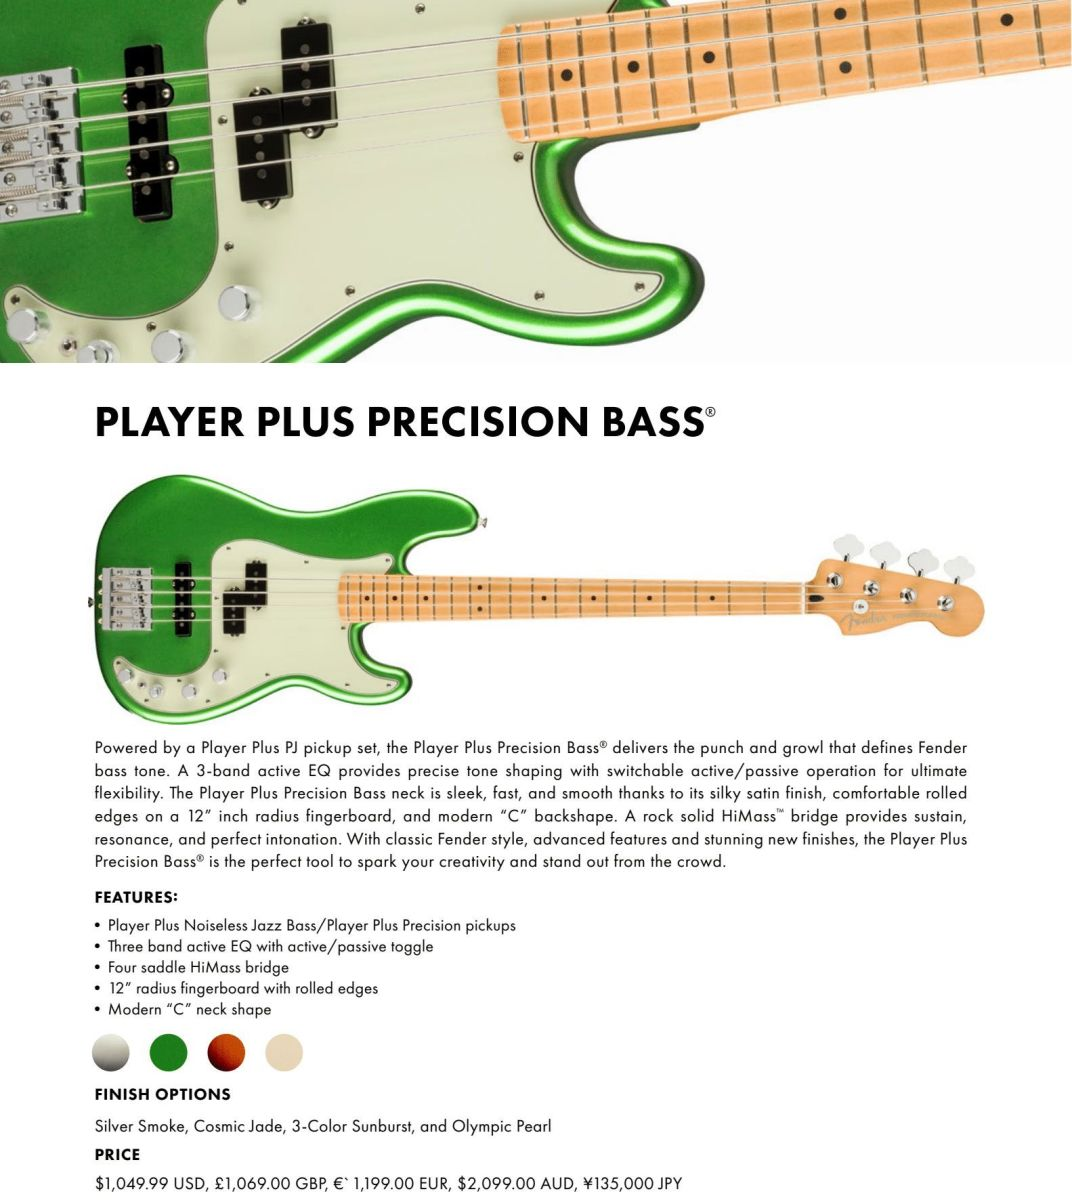 Transactional_Fender_Player Plus Lookbook_FINAL (Page 9)